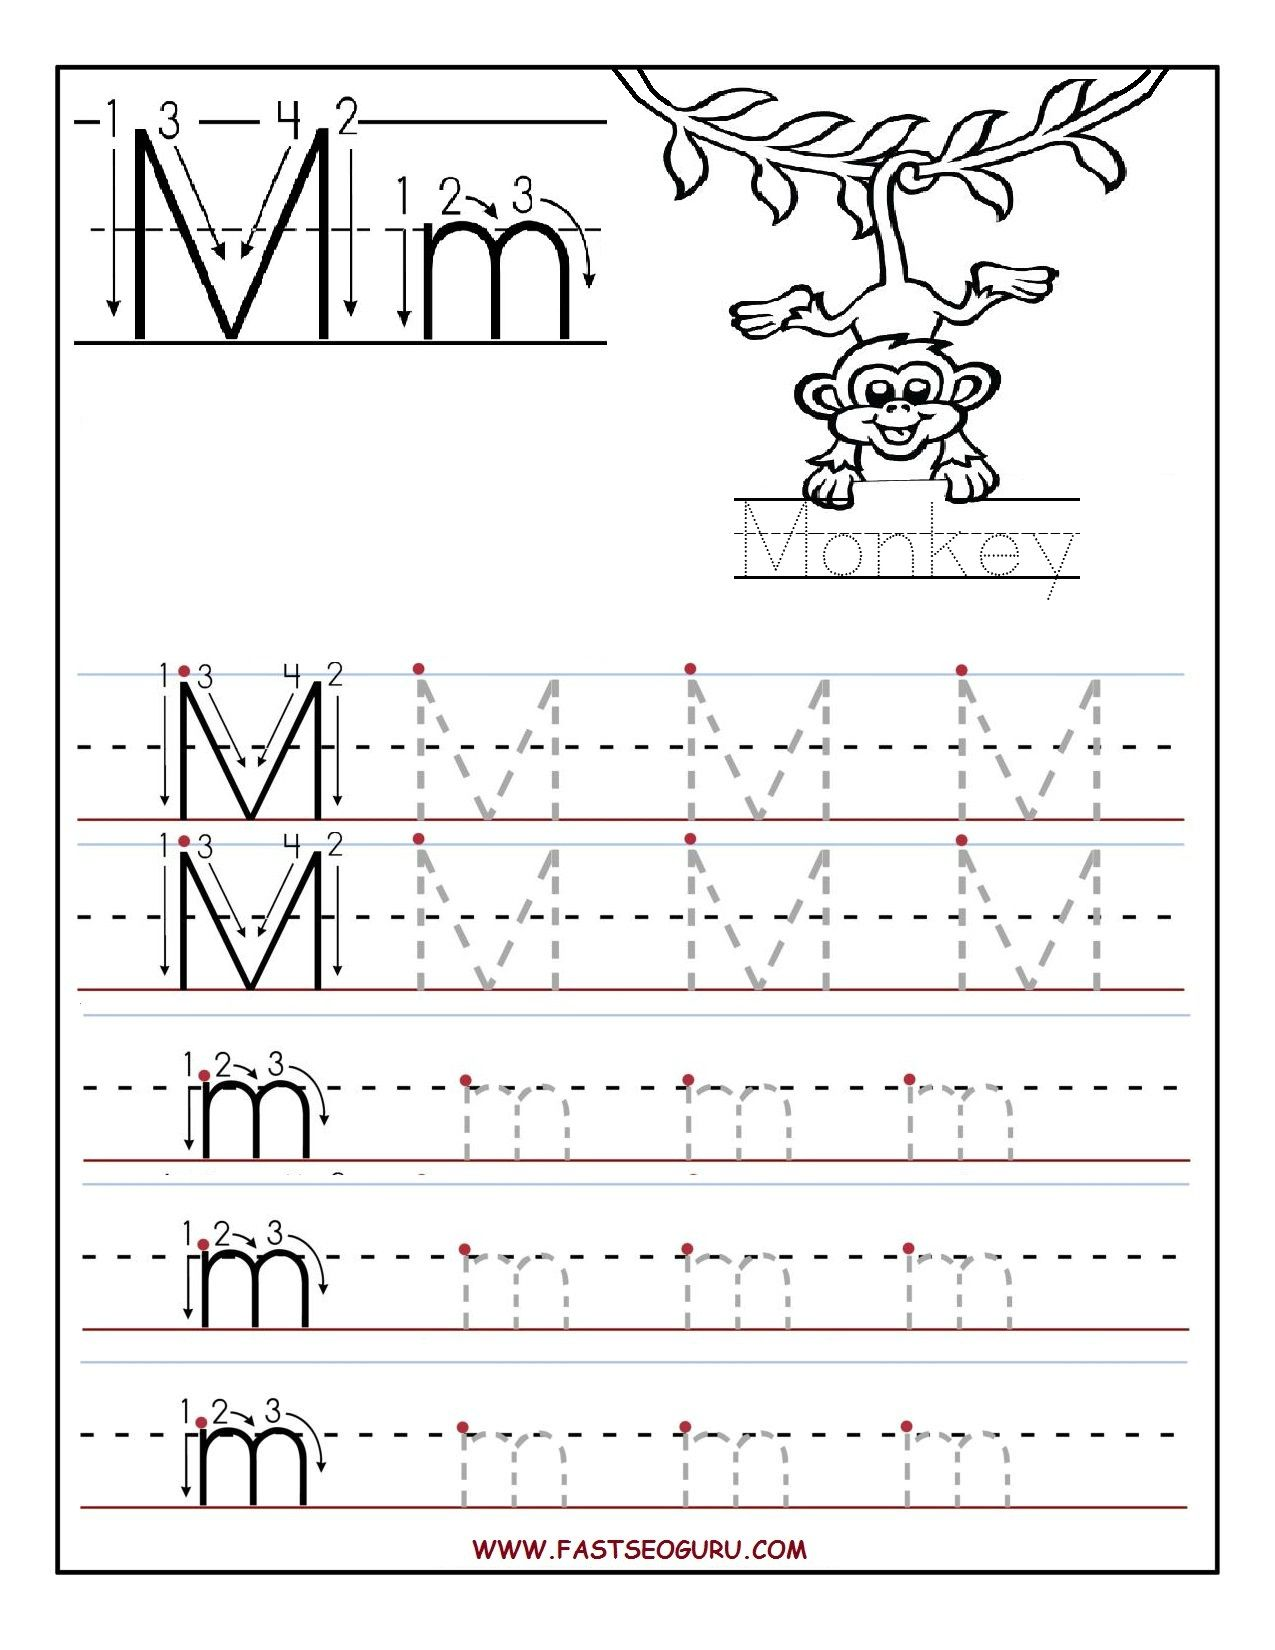 Letter M Worksheet For Preschool